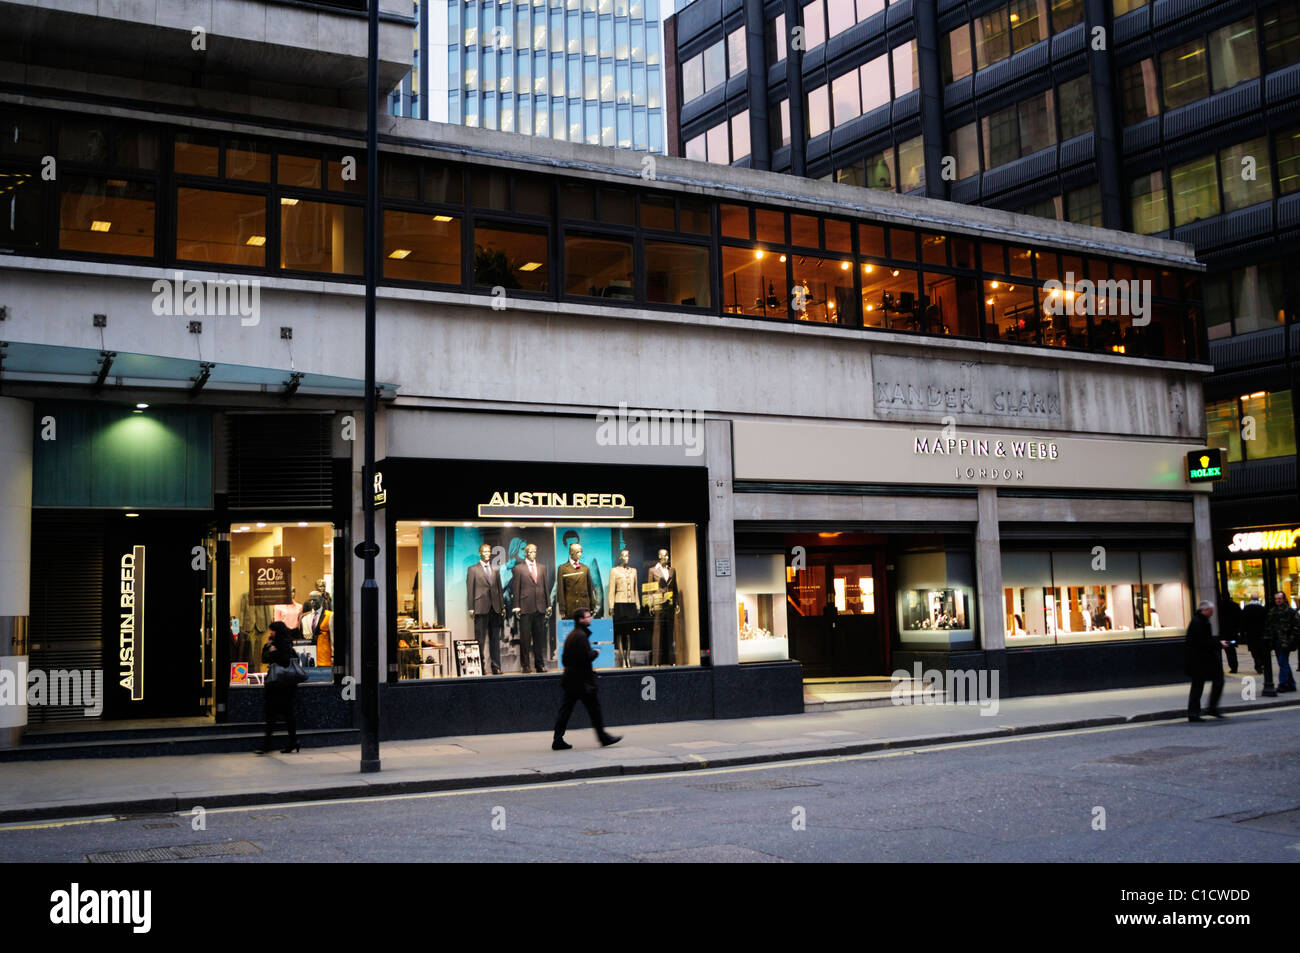 Jewellers London High Resolution Stock Photography And Images Alamy